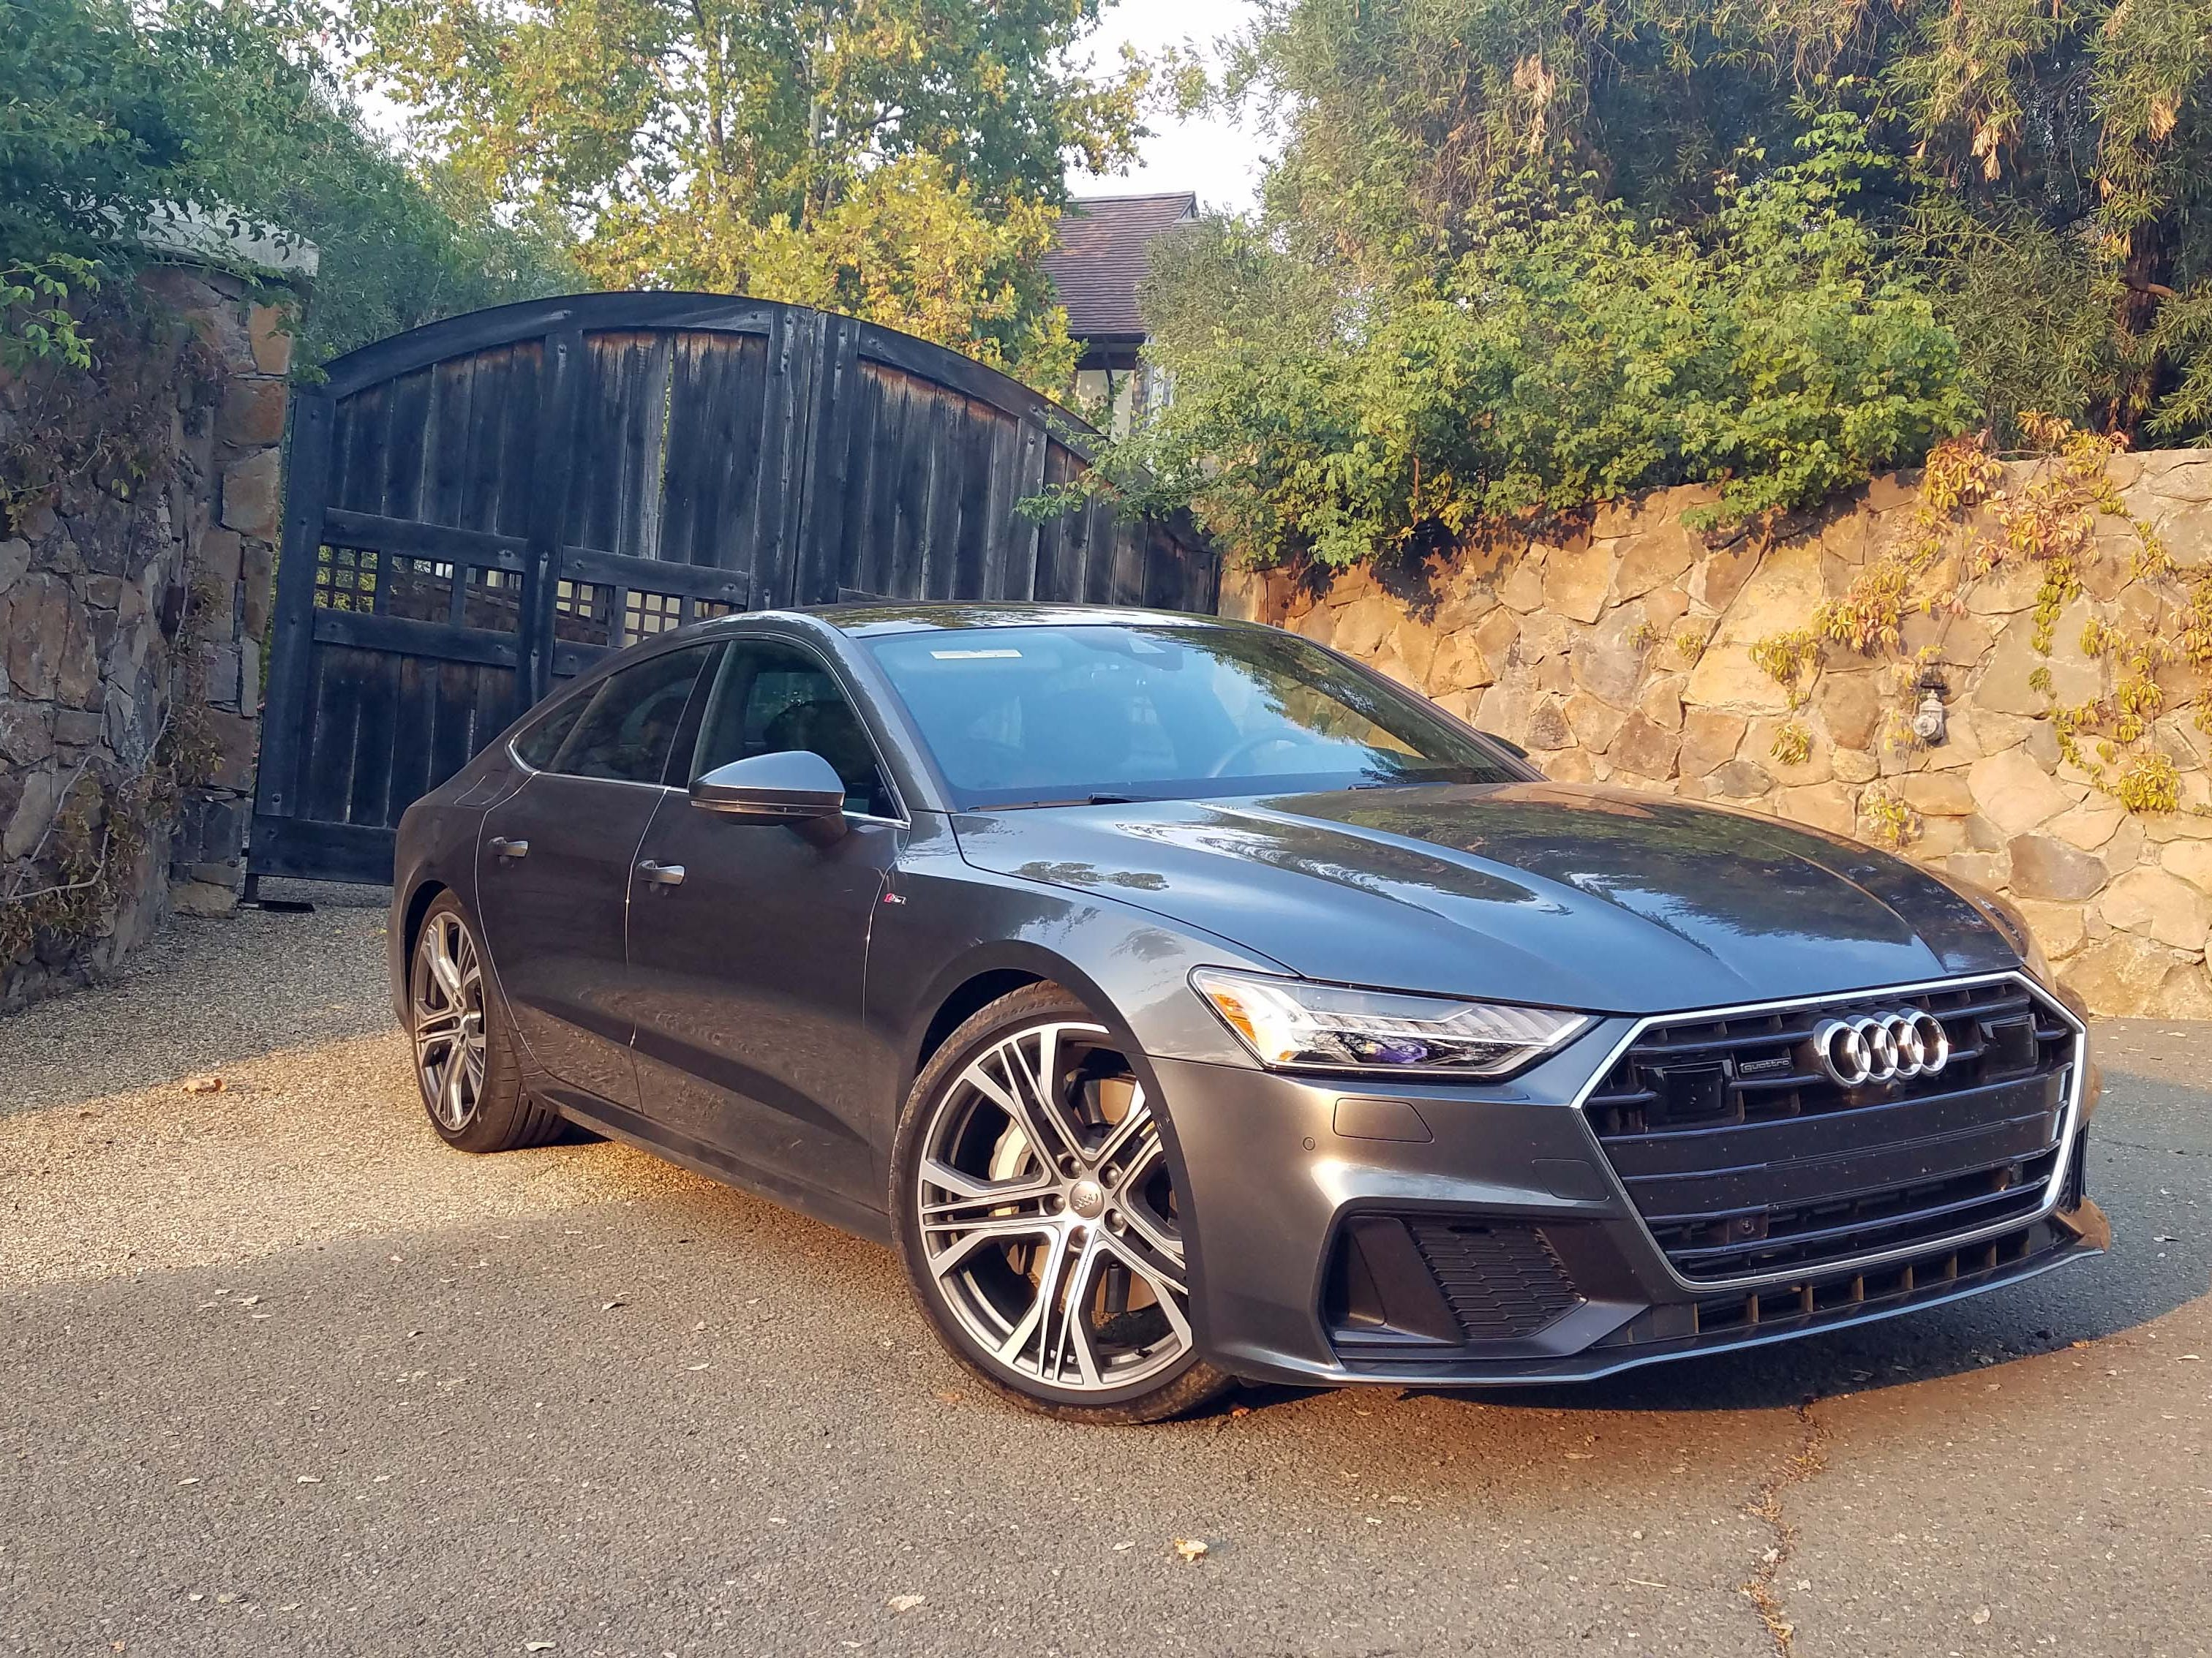 The Audi A7 was an instant design icon when it debuted in 2010. For its second act, Audi maintains the familiar sportback look in 2019 while giving the car a more muscular stance, lots of tech and 21-inch wheels.